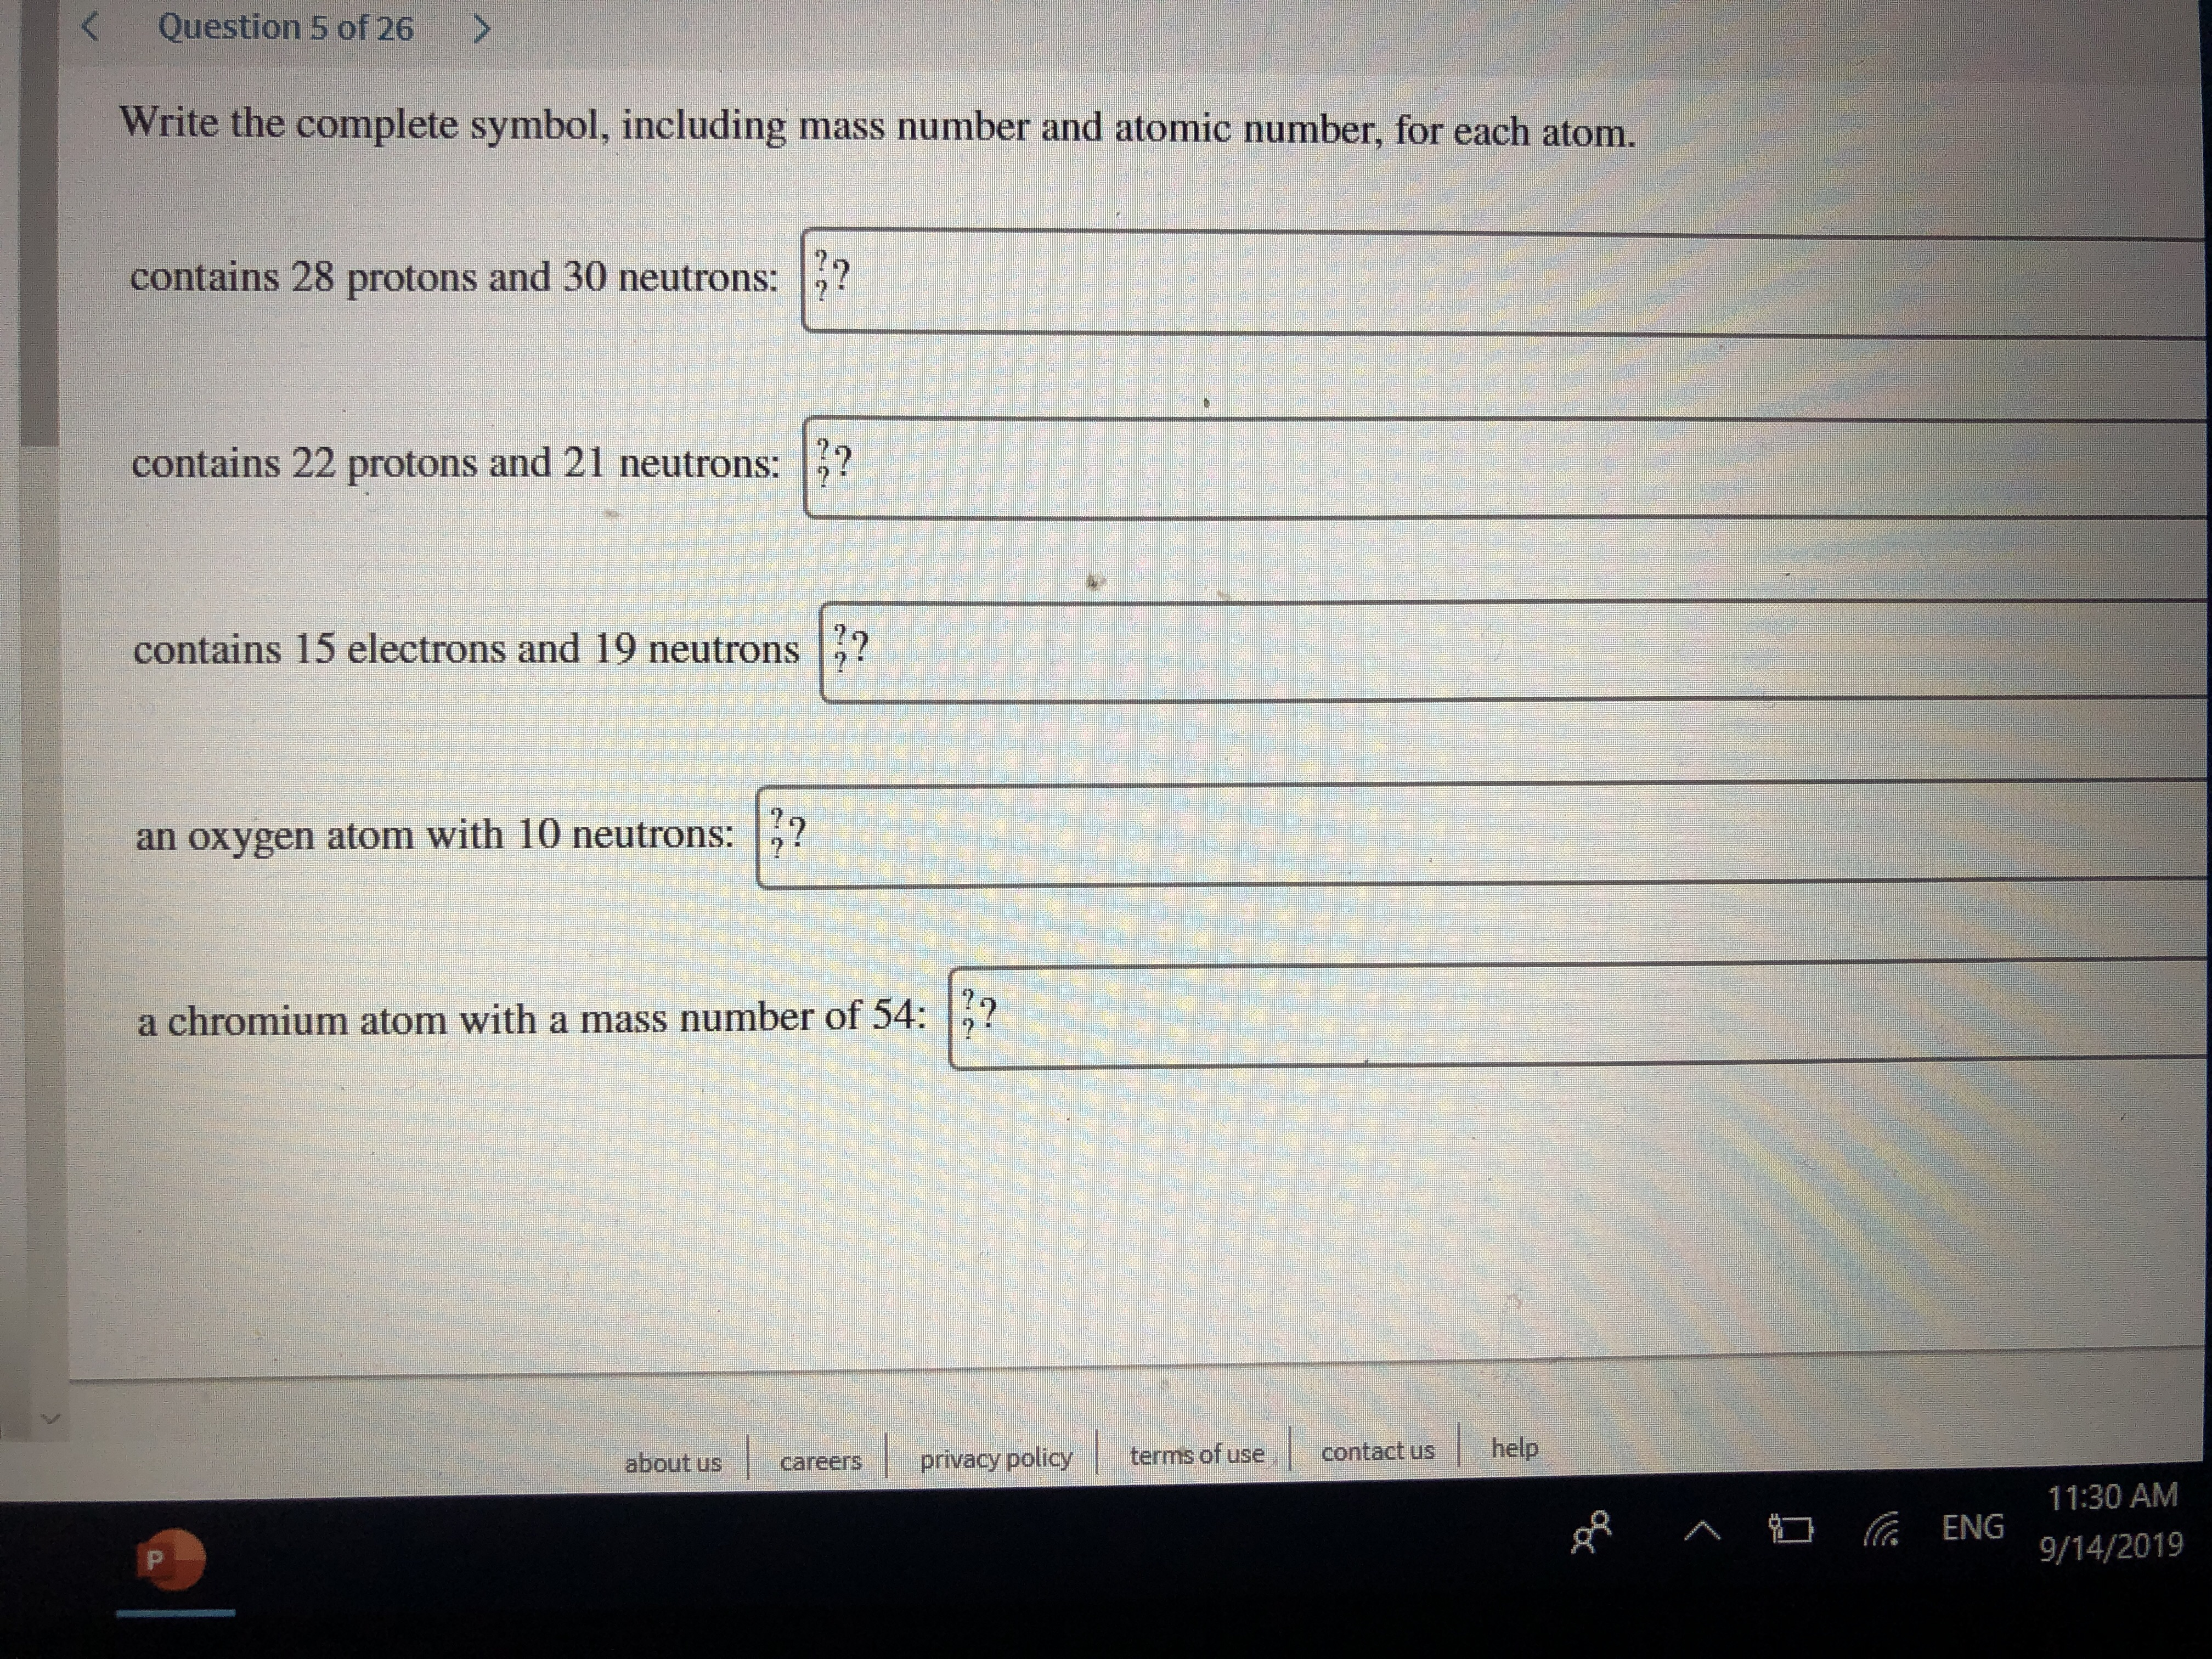 Question 5 of 26 K Write the complete symbol, including mass number and atomic number, for each atom. contains 28 protons and 30 neutrons:? contains 22 protons and 21 neutrons: contains 15 electrons and 19 neutrons an oxygen atom with 10 neutrons: a chromium atom with a mass number of 54: help contact us terms of use privacy policy about us careers 11:30 AM ENG 9/14/2019 P